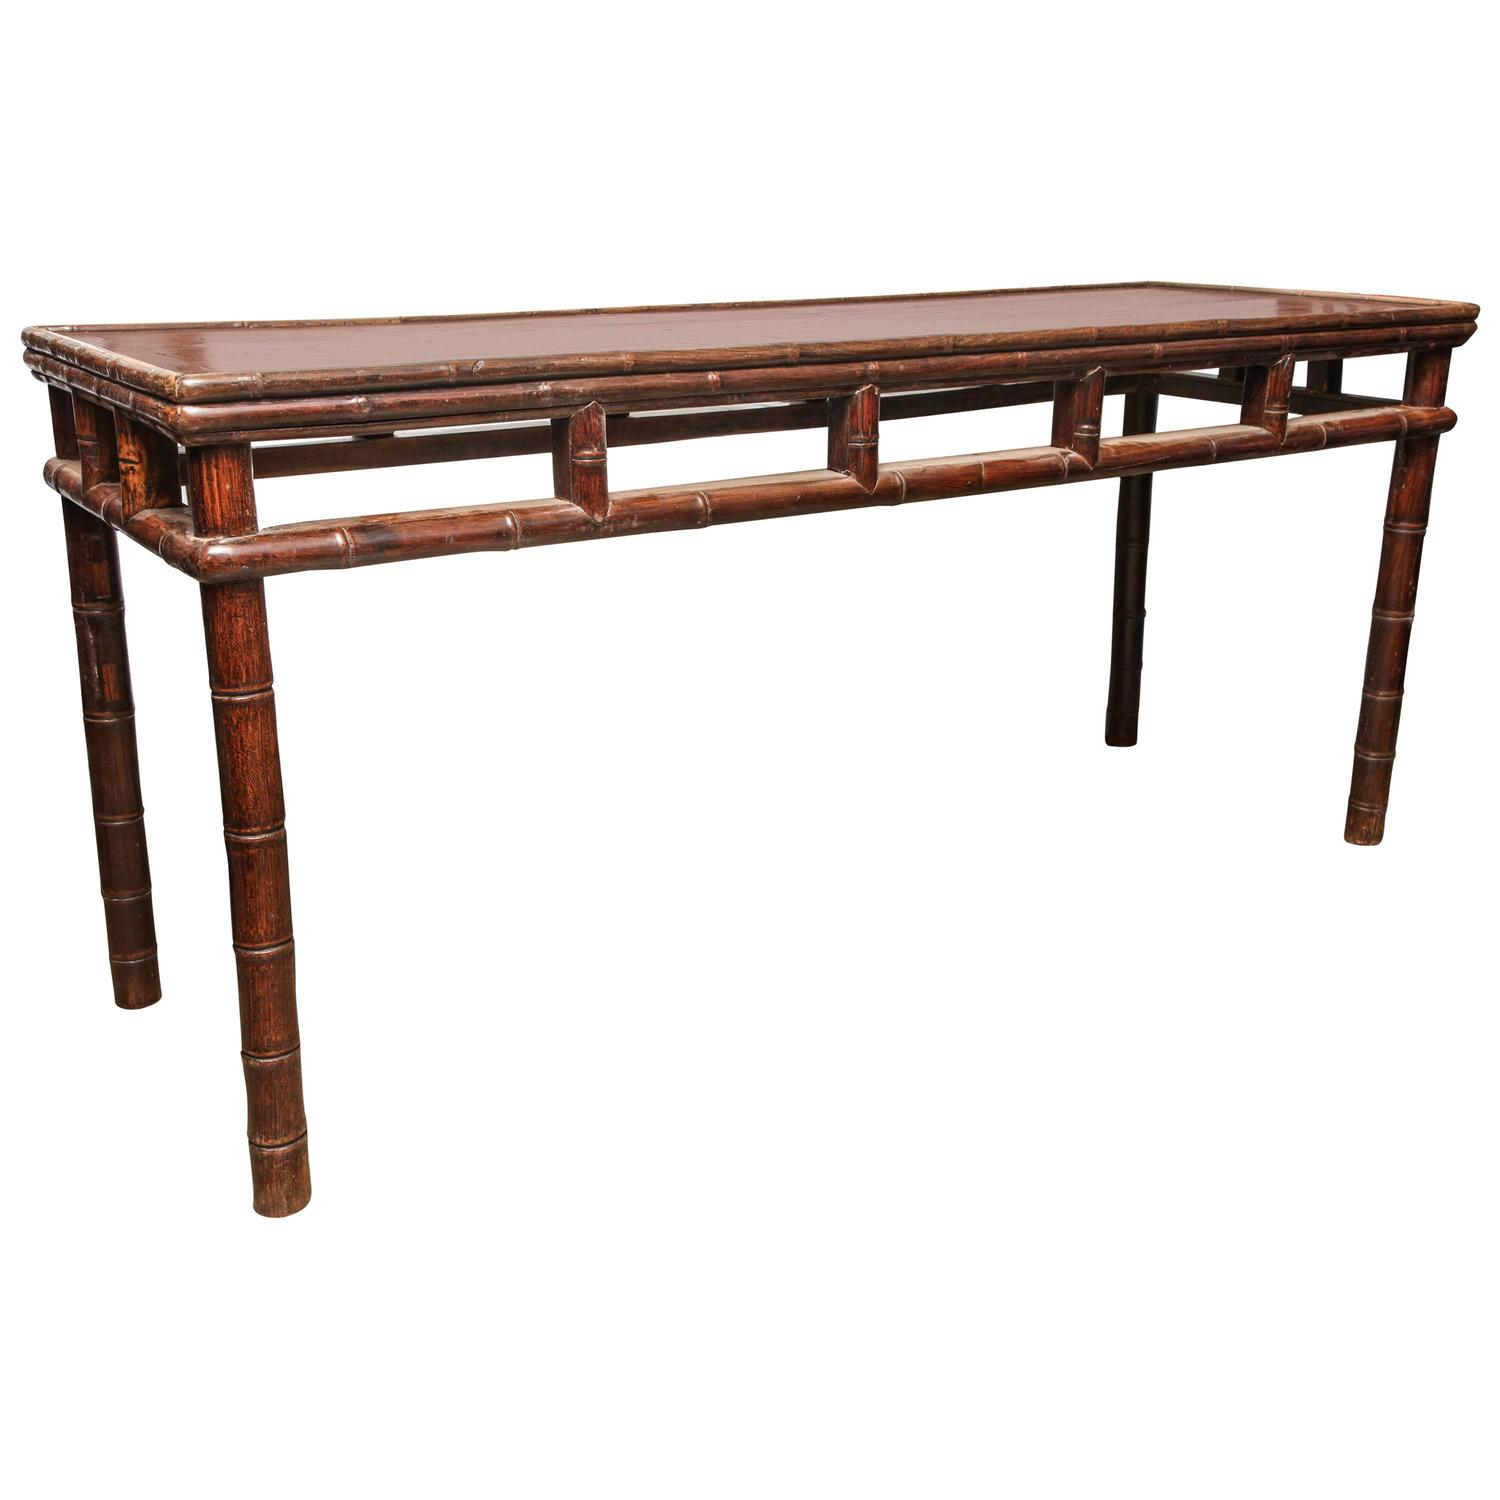 Long Console Table : Long Console Table with Bamboo Details For Sale at 1stdibs